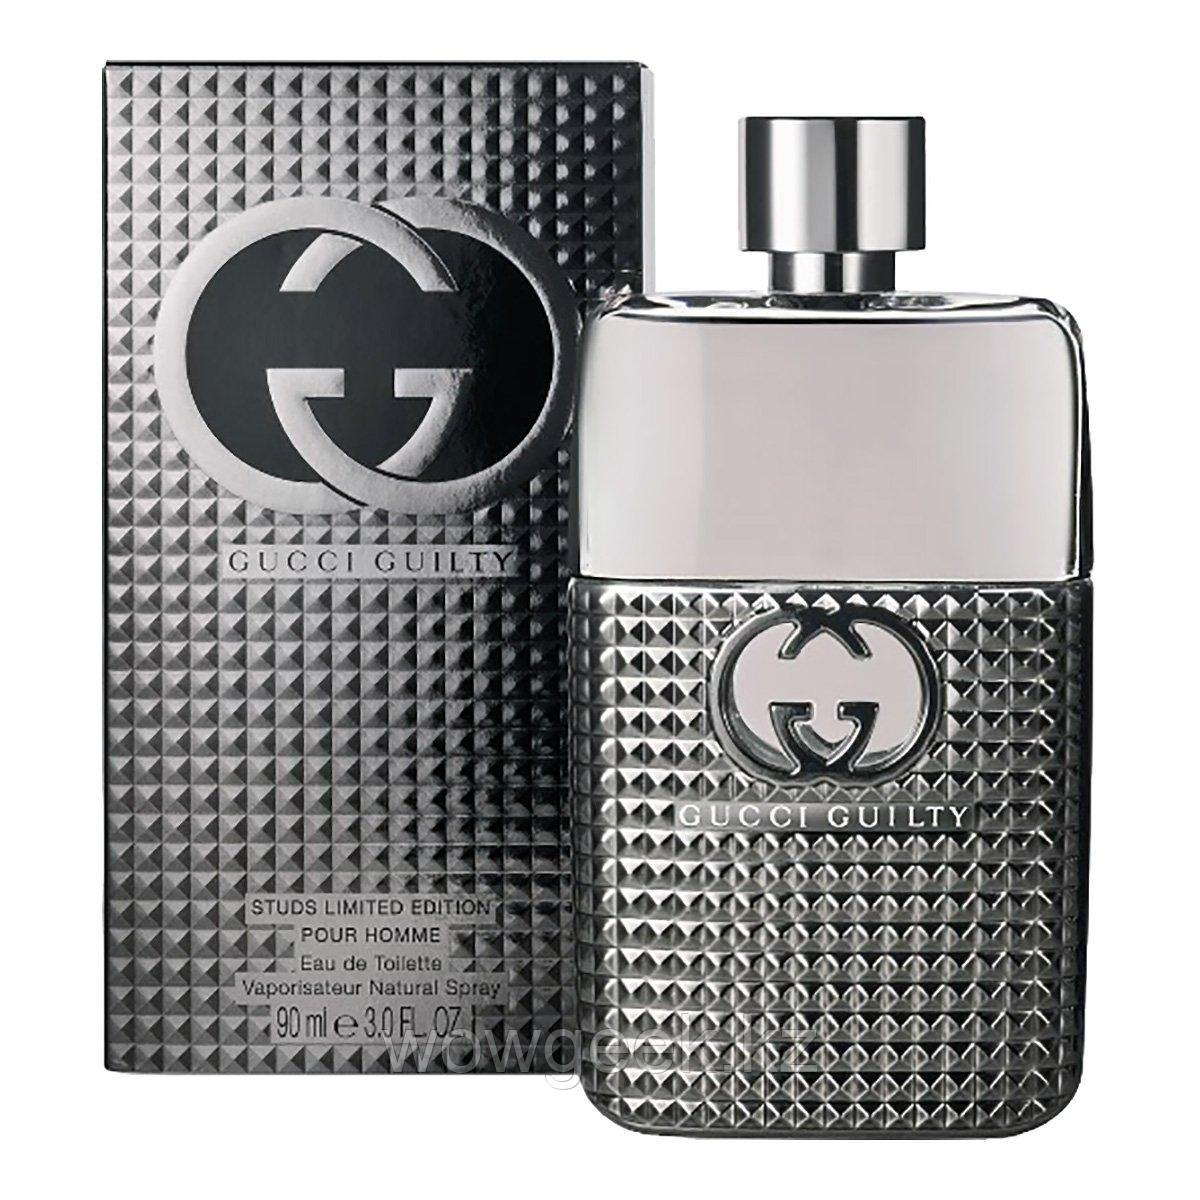 Мужской одеколон Gucci Guilty Stud Limited Edition Pour Homme